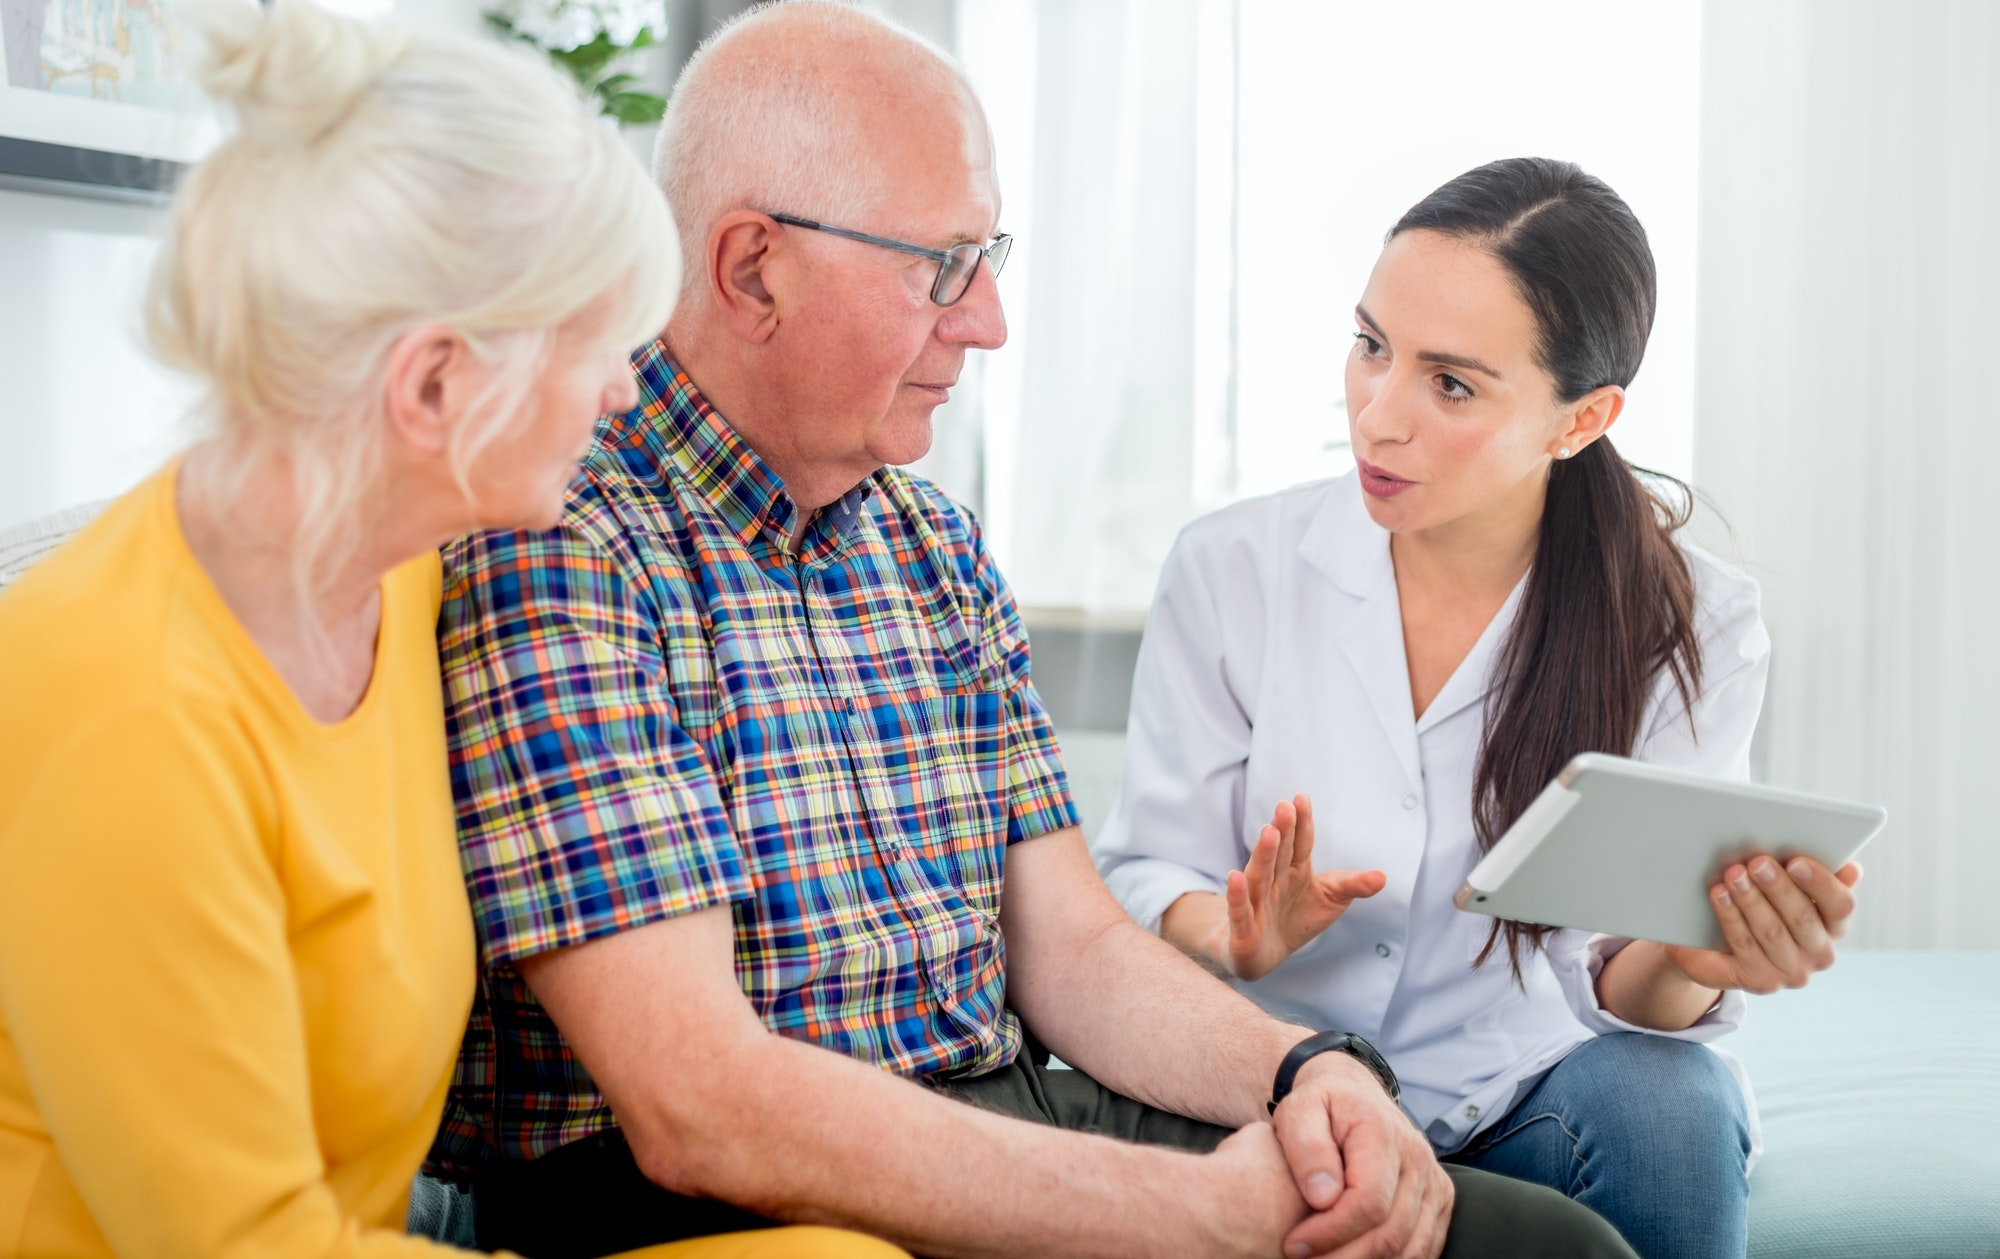 Nurse gives treatment advices to senior couple at home